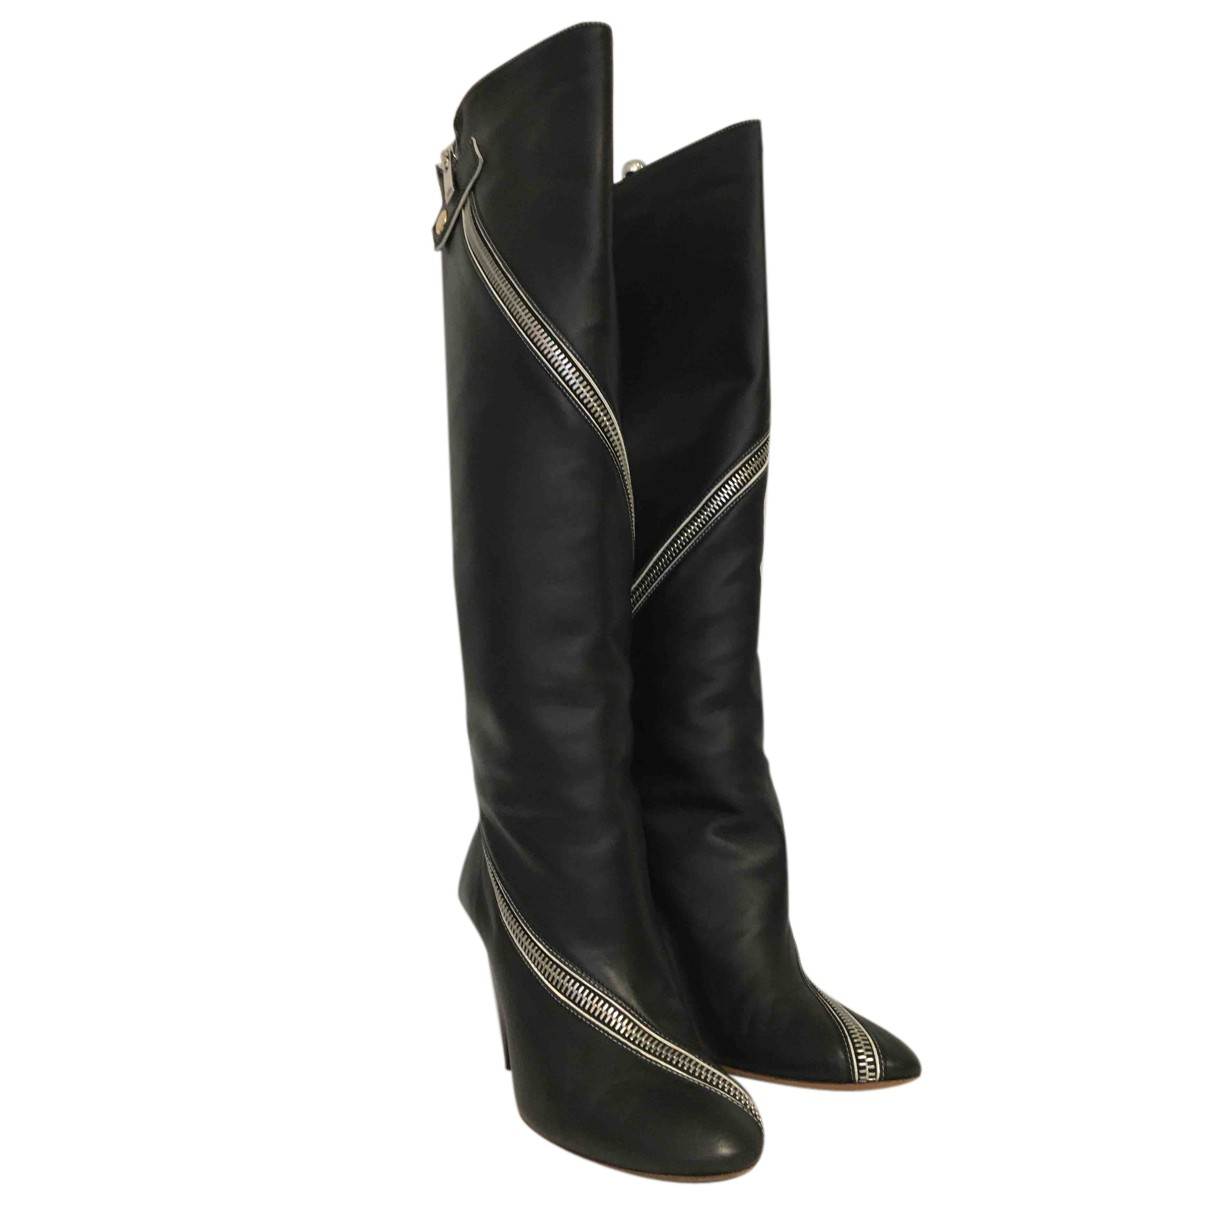 Celine N Black Leather Boots for Women 38.5 EU